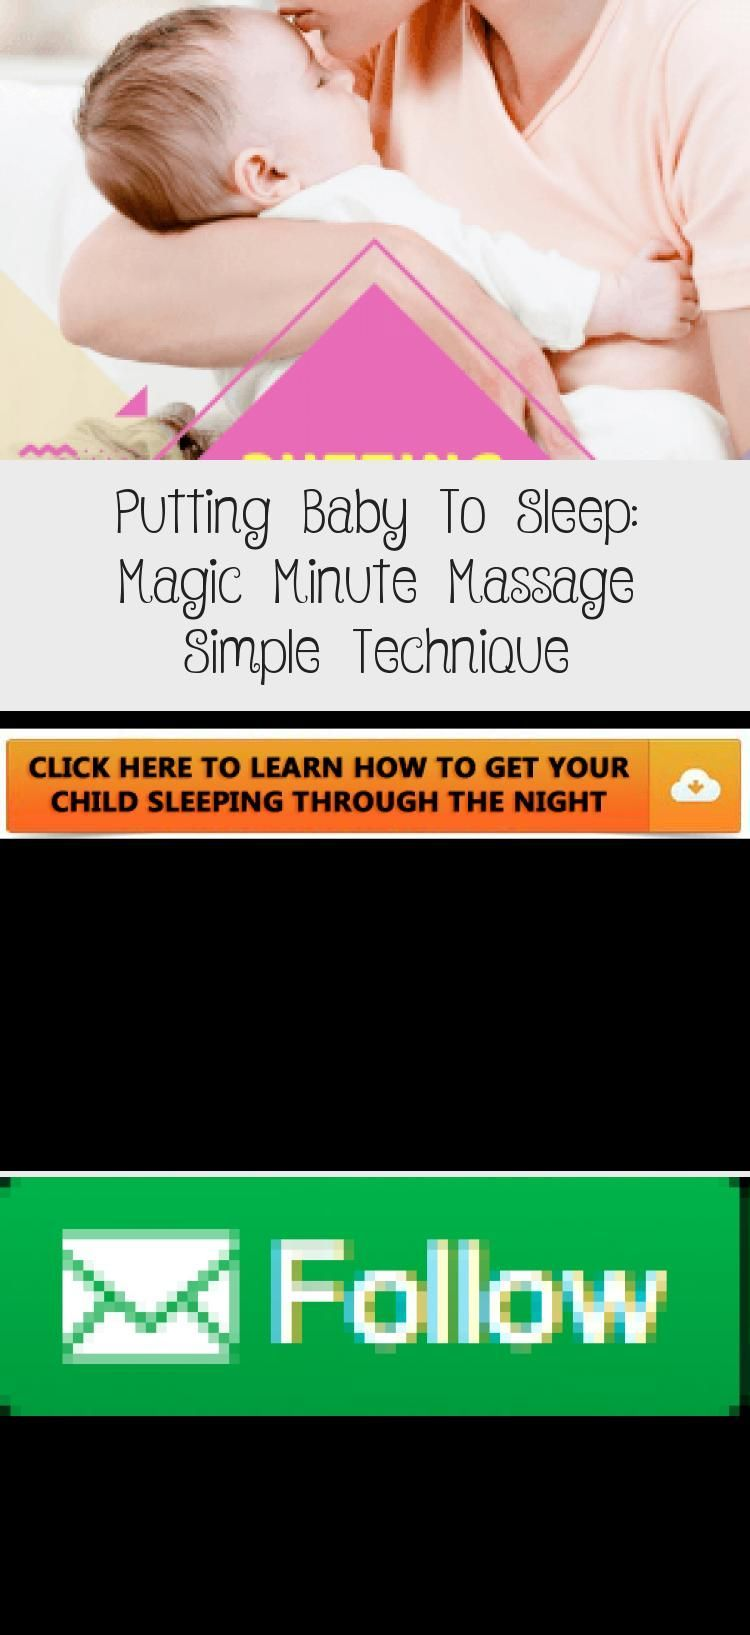 Putting Baby To Sleep: Magic Minute Massage Simple Technique - health and diet fitness -  Learn the...